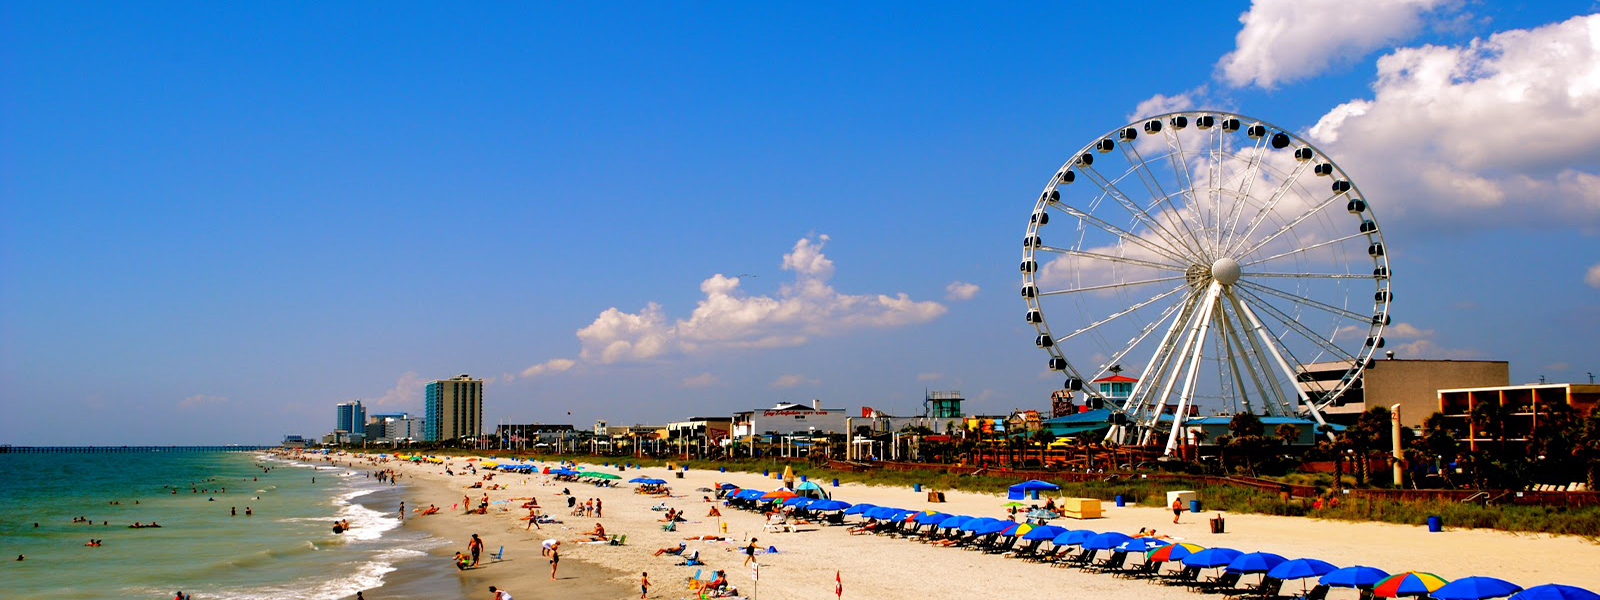 Myrtle Beach Activities, Myrtle Beach Surf Lessons